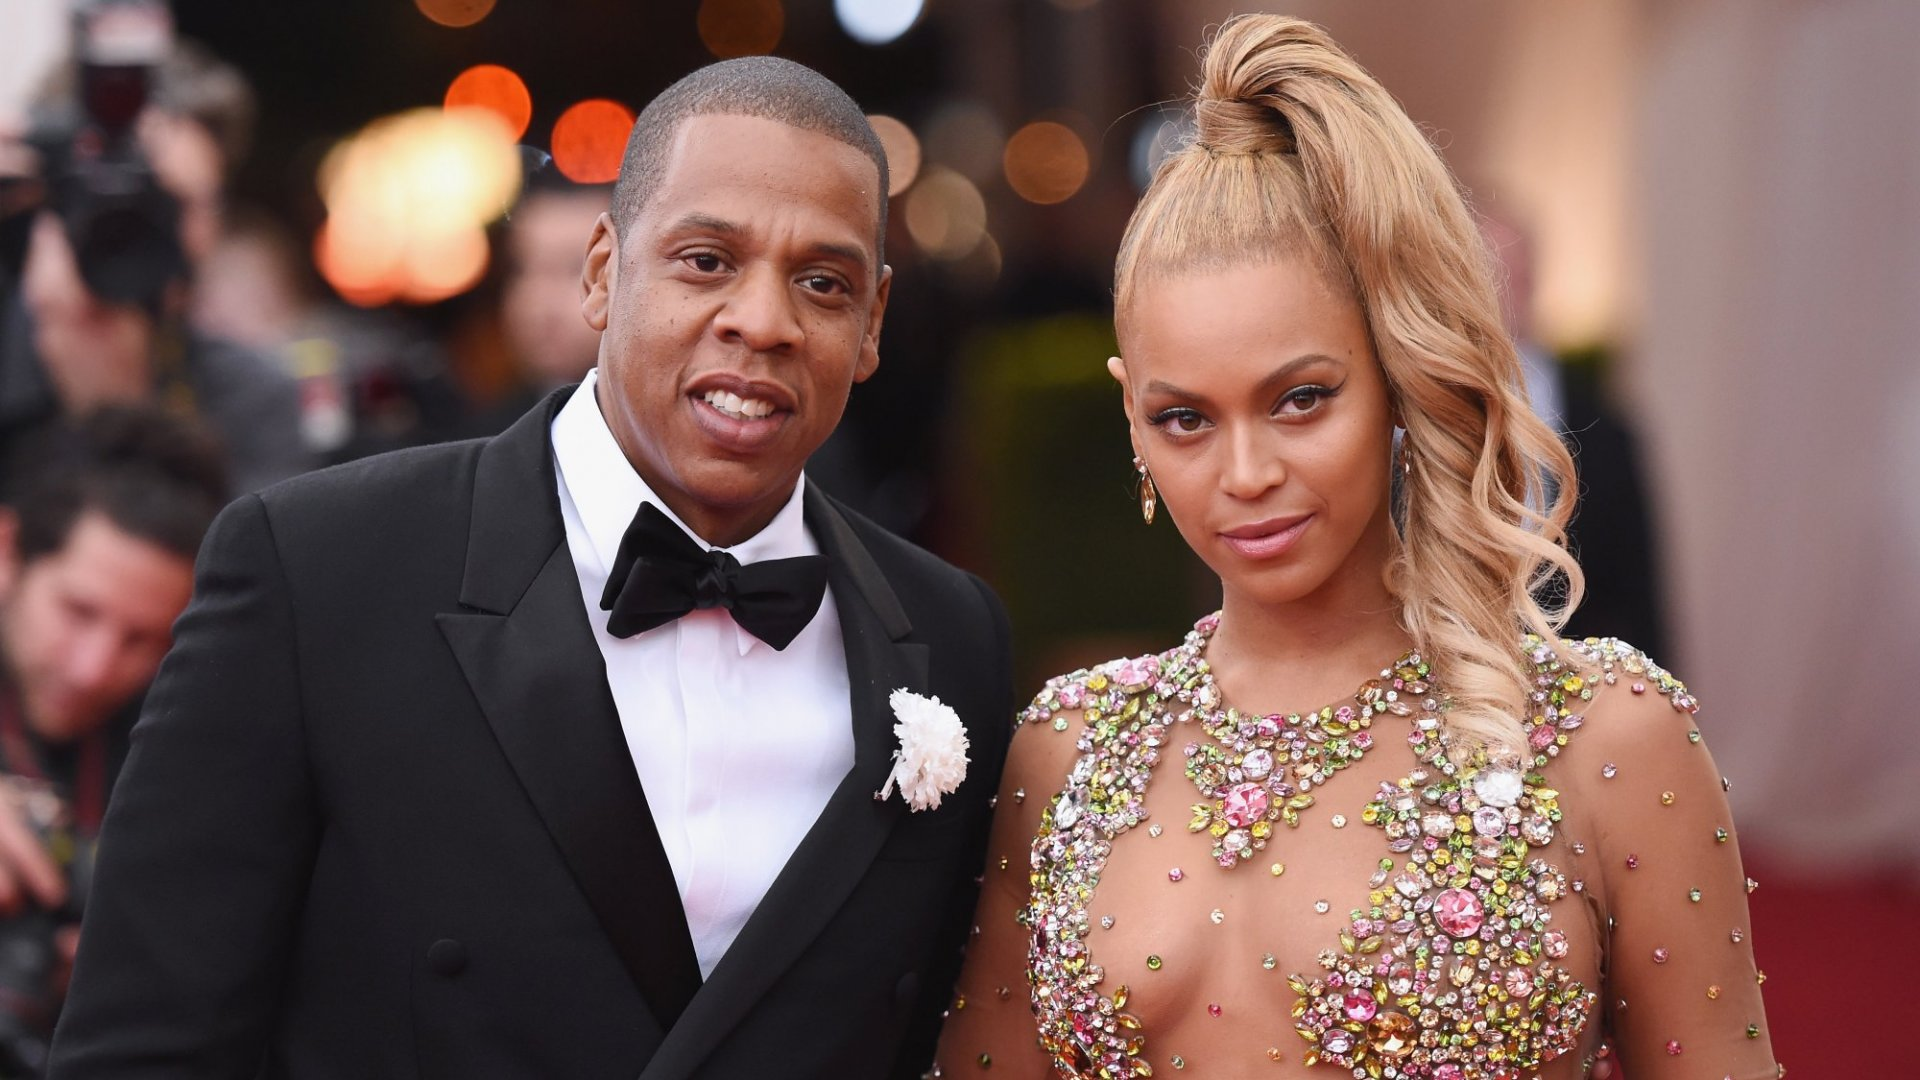 Jay-Z Became Hip-Hop's First Billionaire By Doing 1 Simple Thing Well